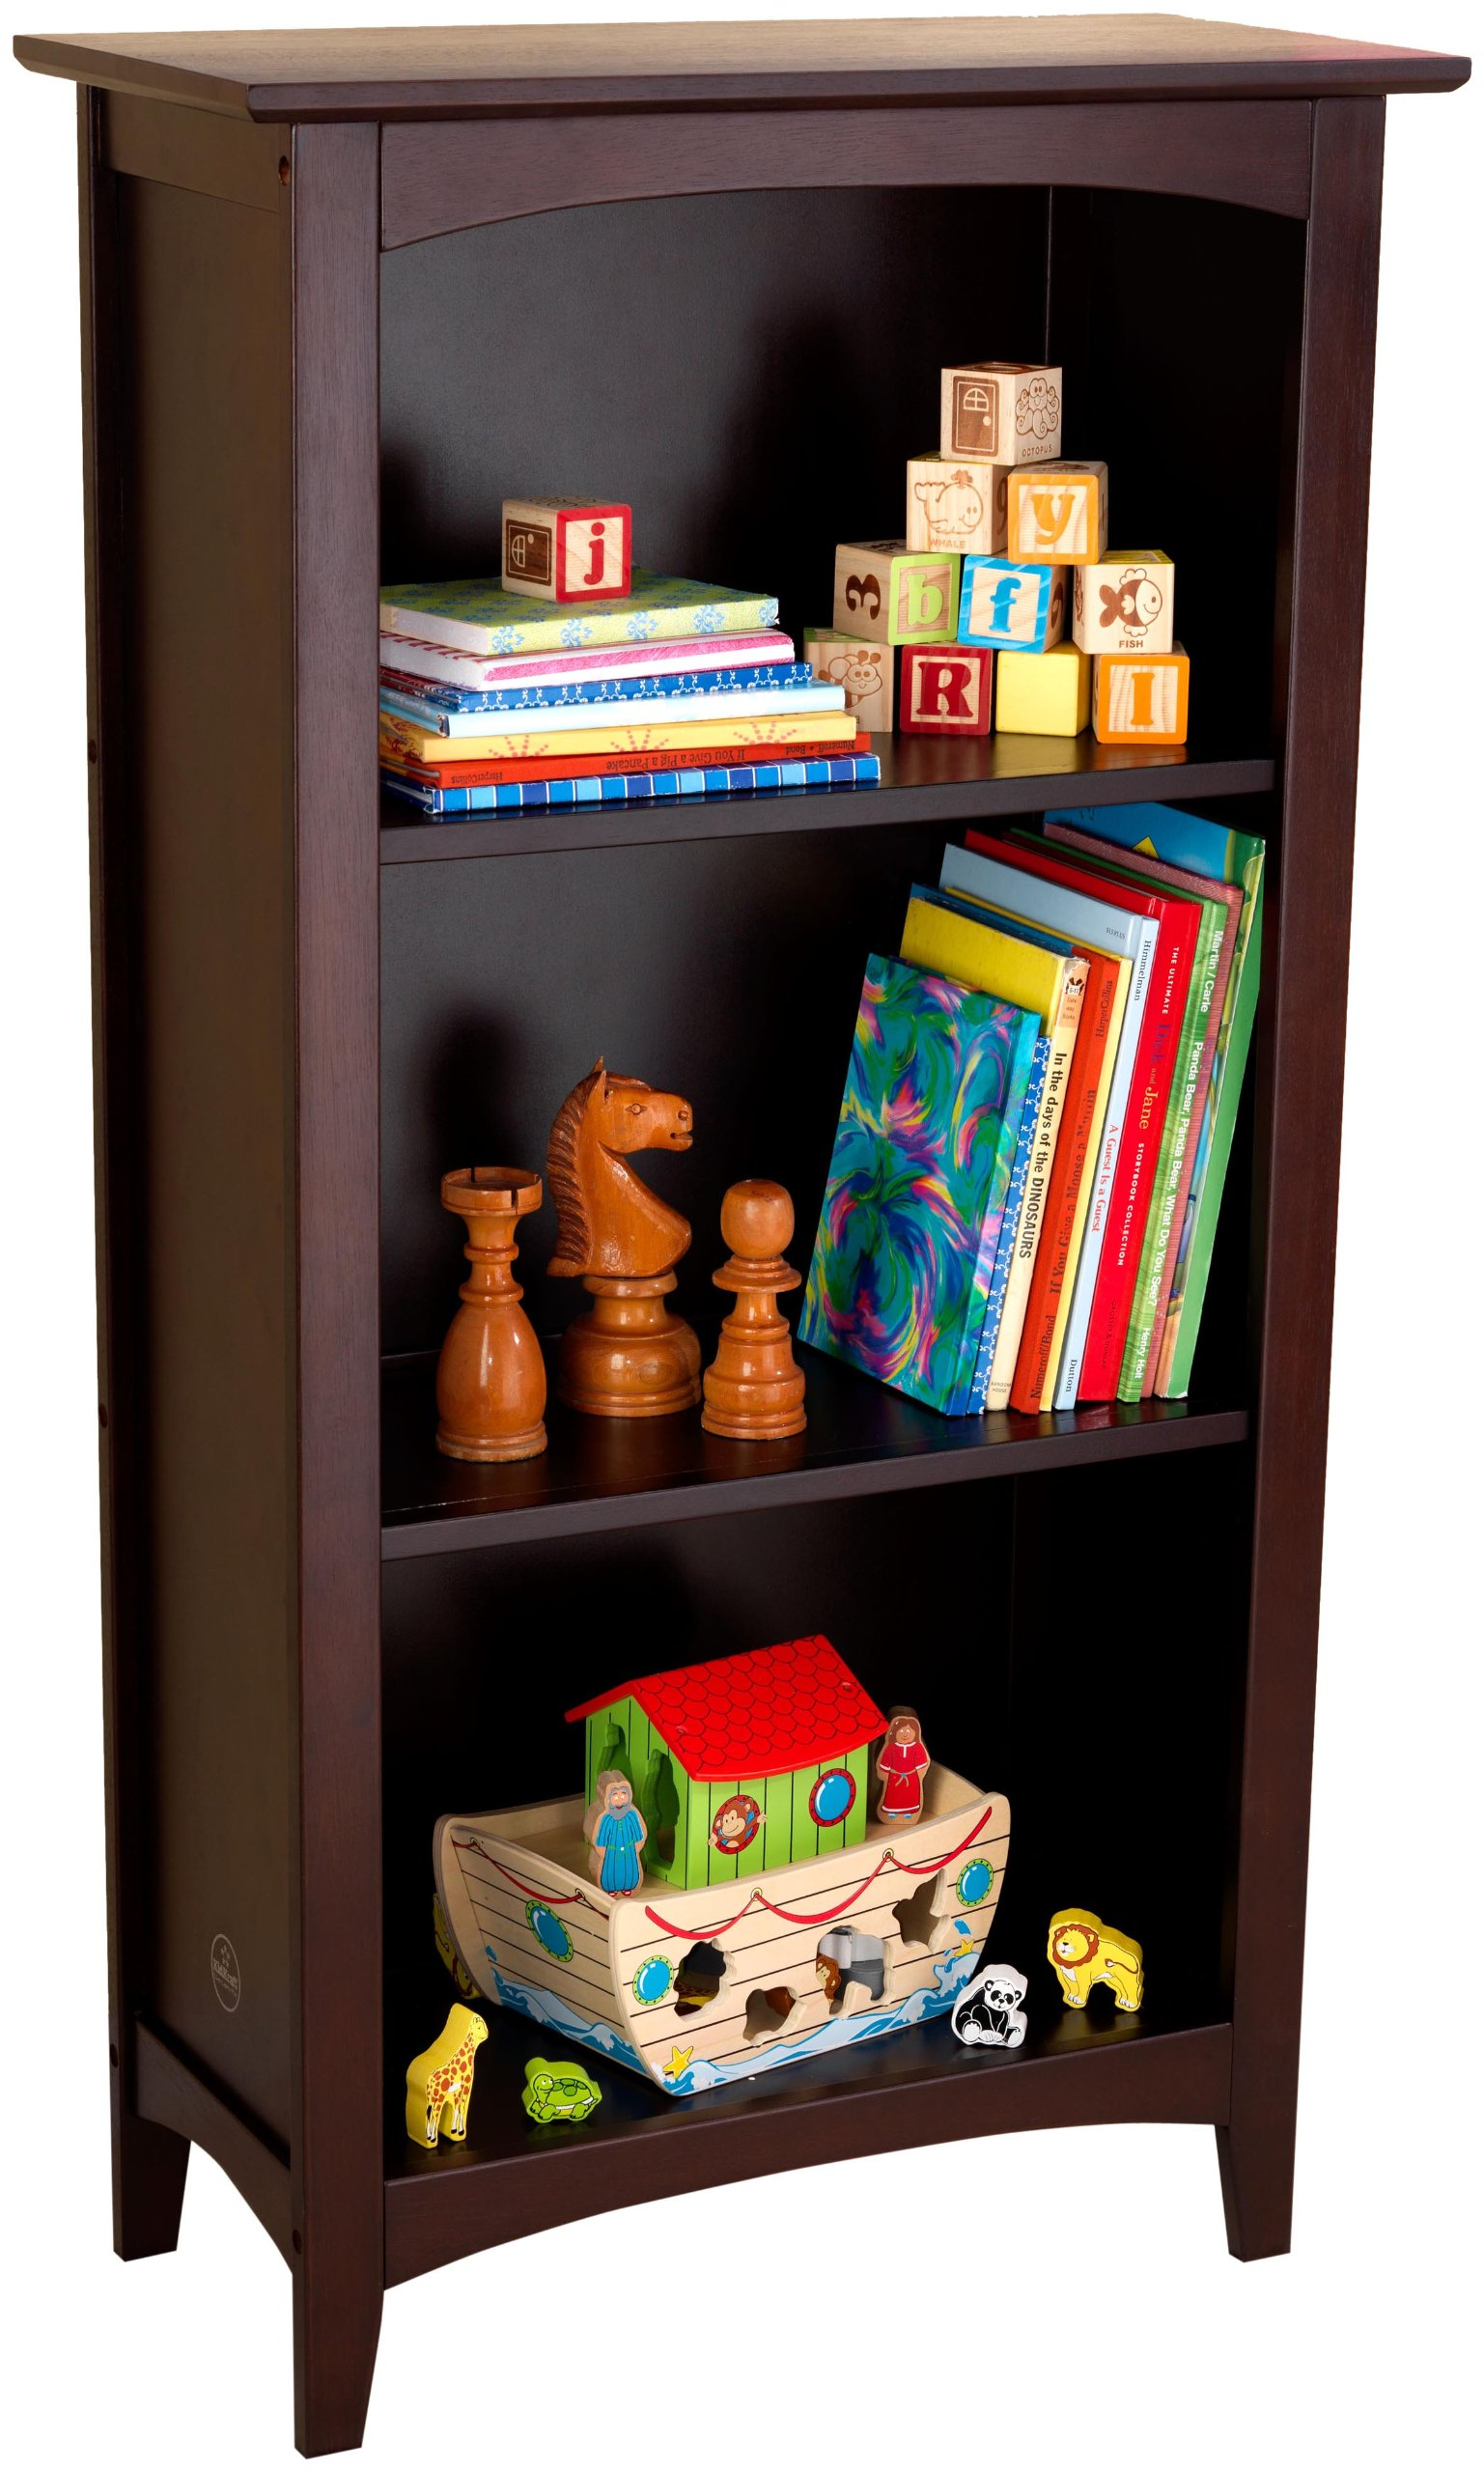 KidKraft Avalon Three-Shelf Bookcase - Espresso by KidKraft